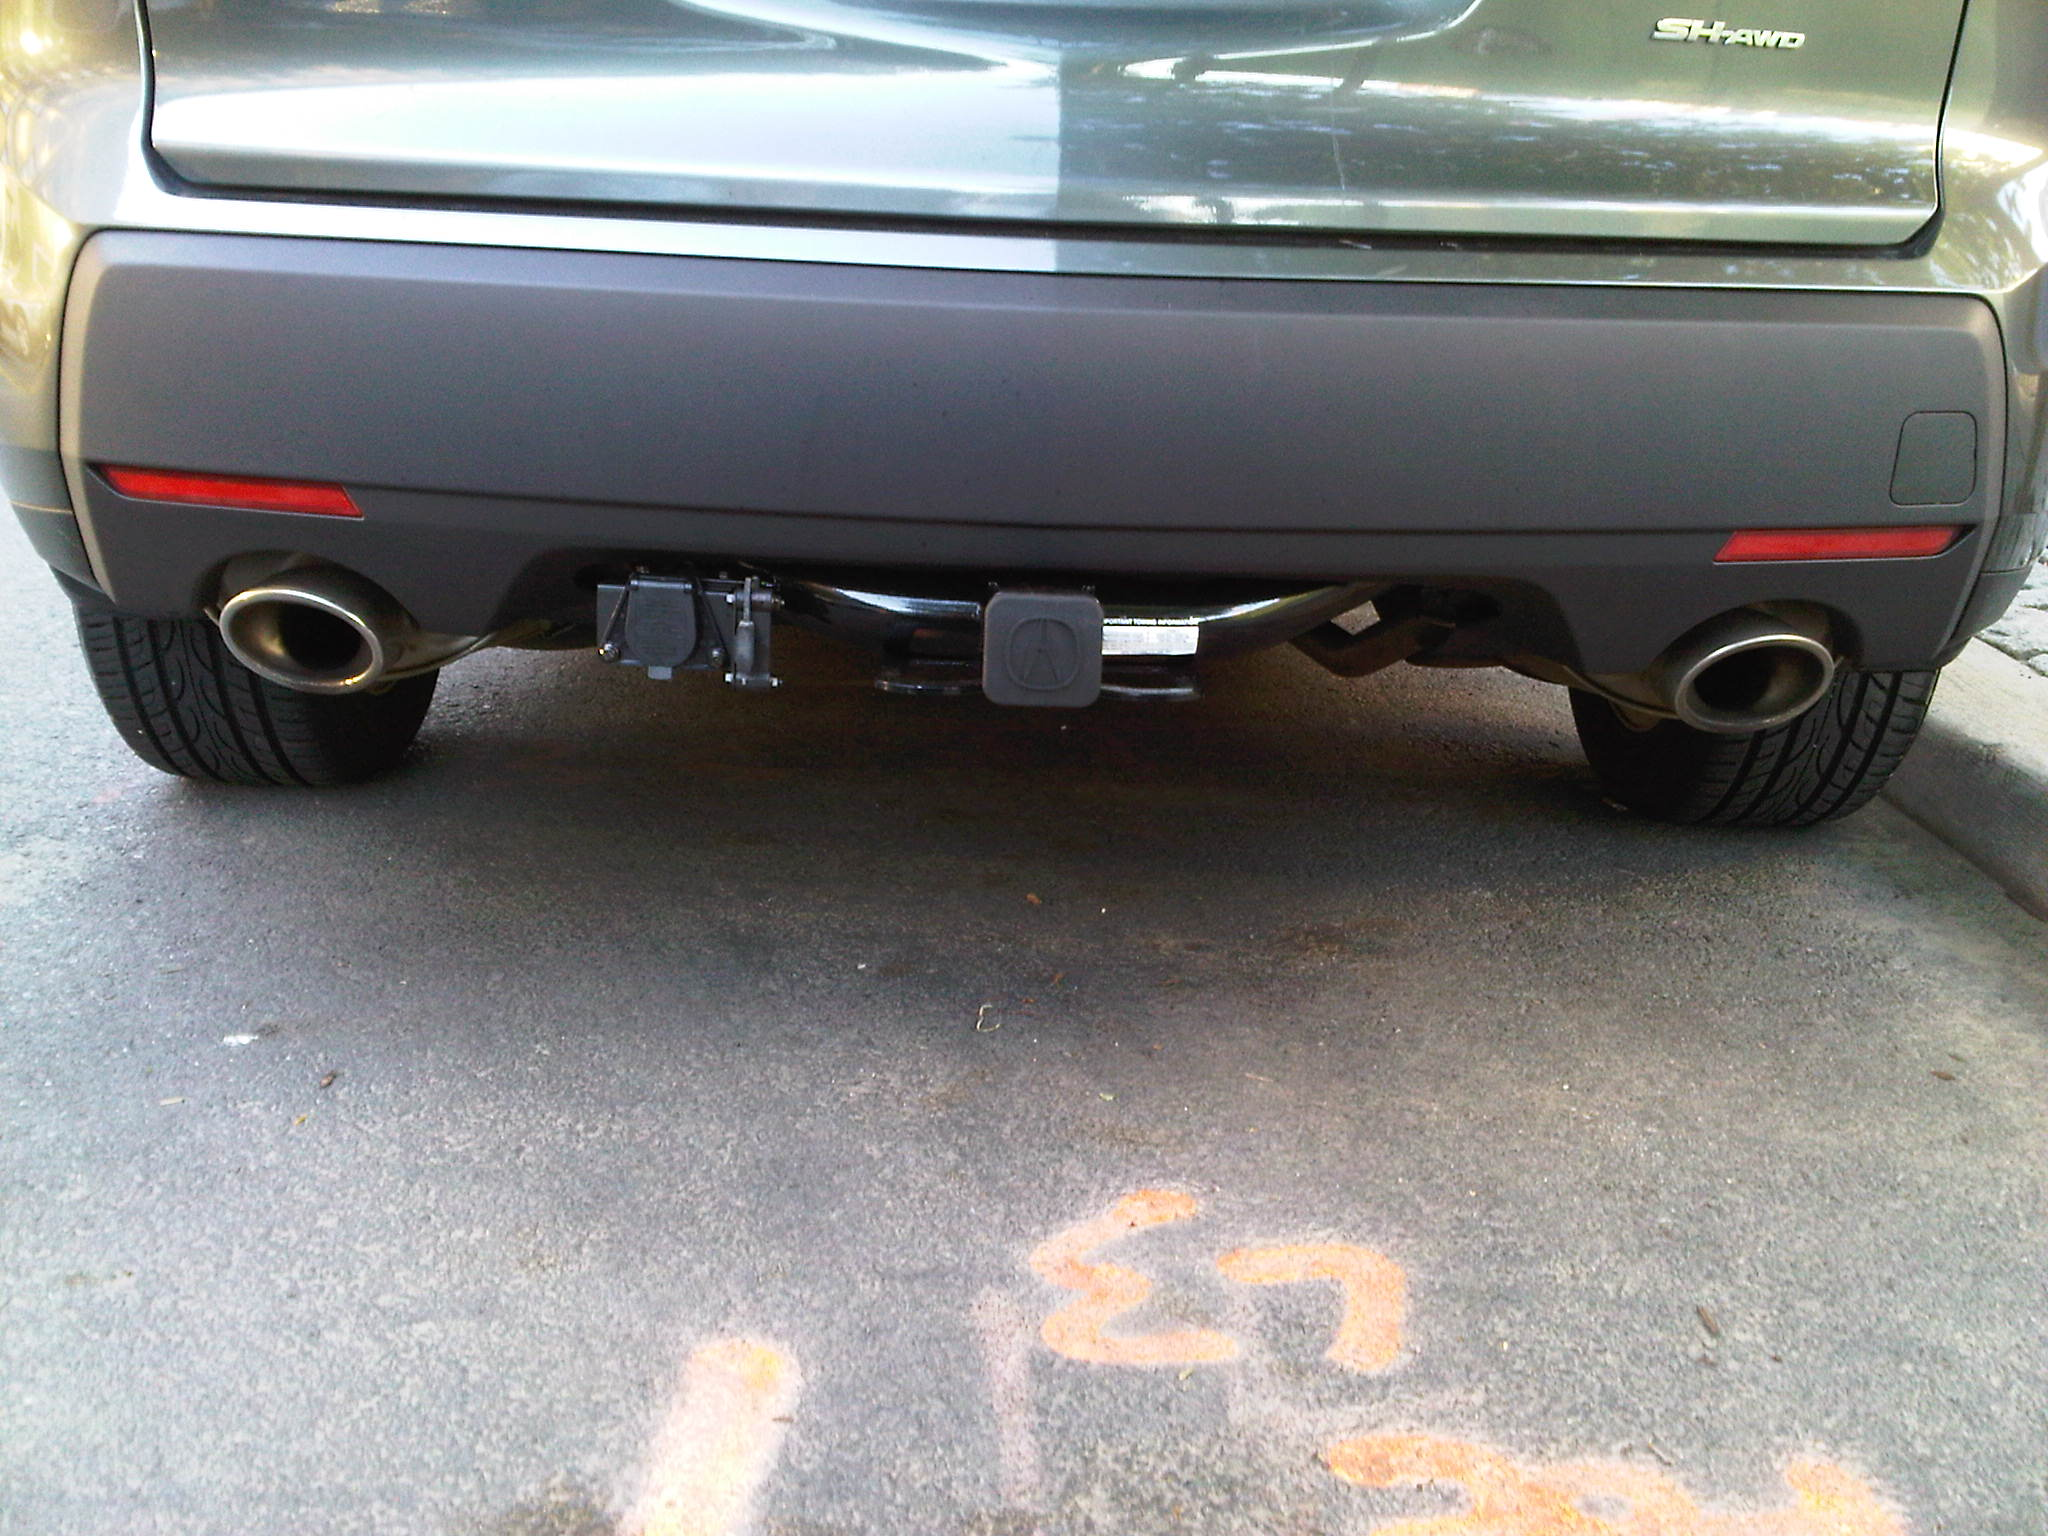 Acura Mdx Trailer Hitch Wwwtopsimagescom - Tow hitch for acura mdx